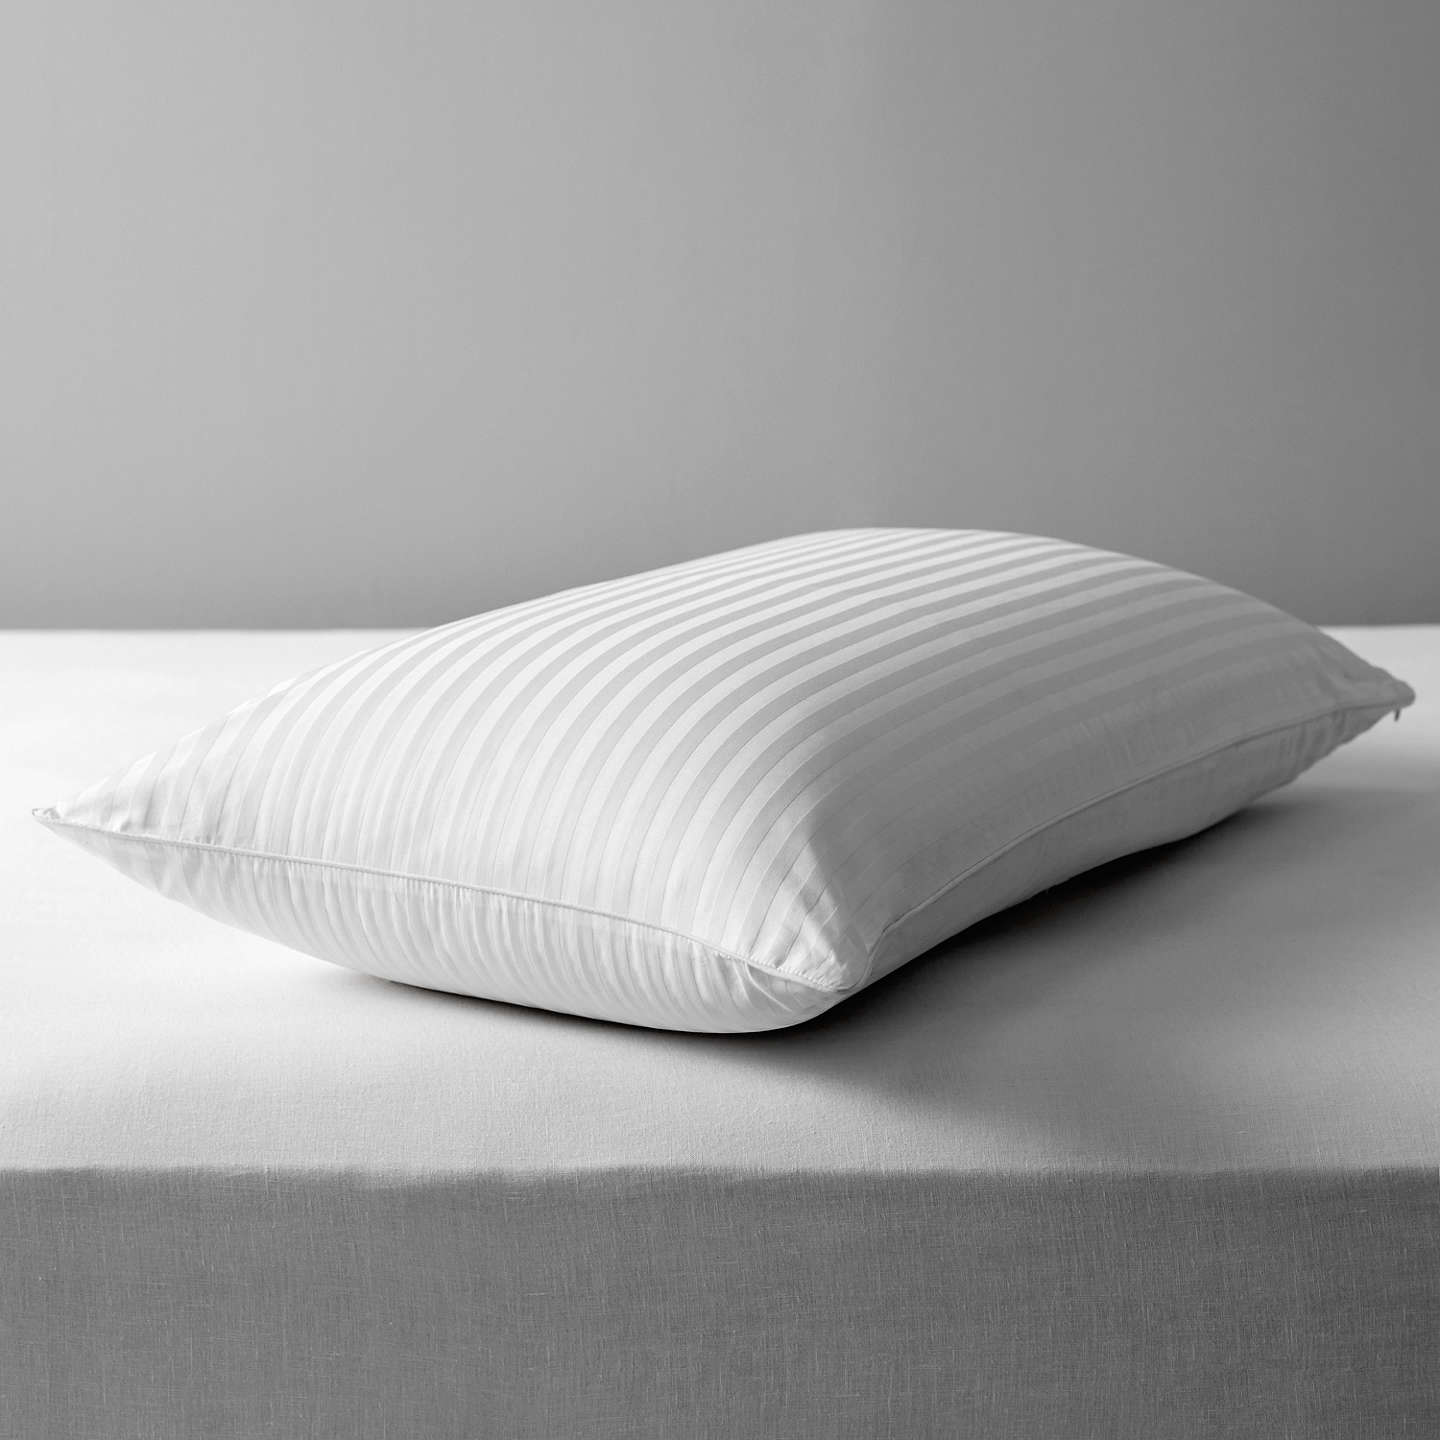 BuyDunlopillo Super Comfort Speciality Pillow Online at johnlewis.com